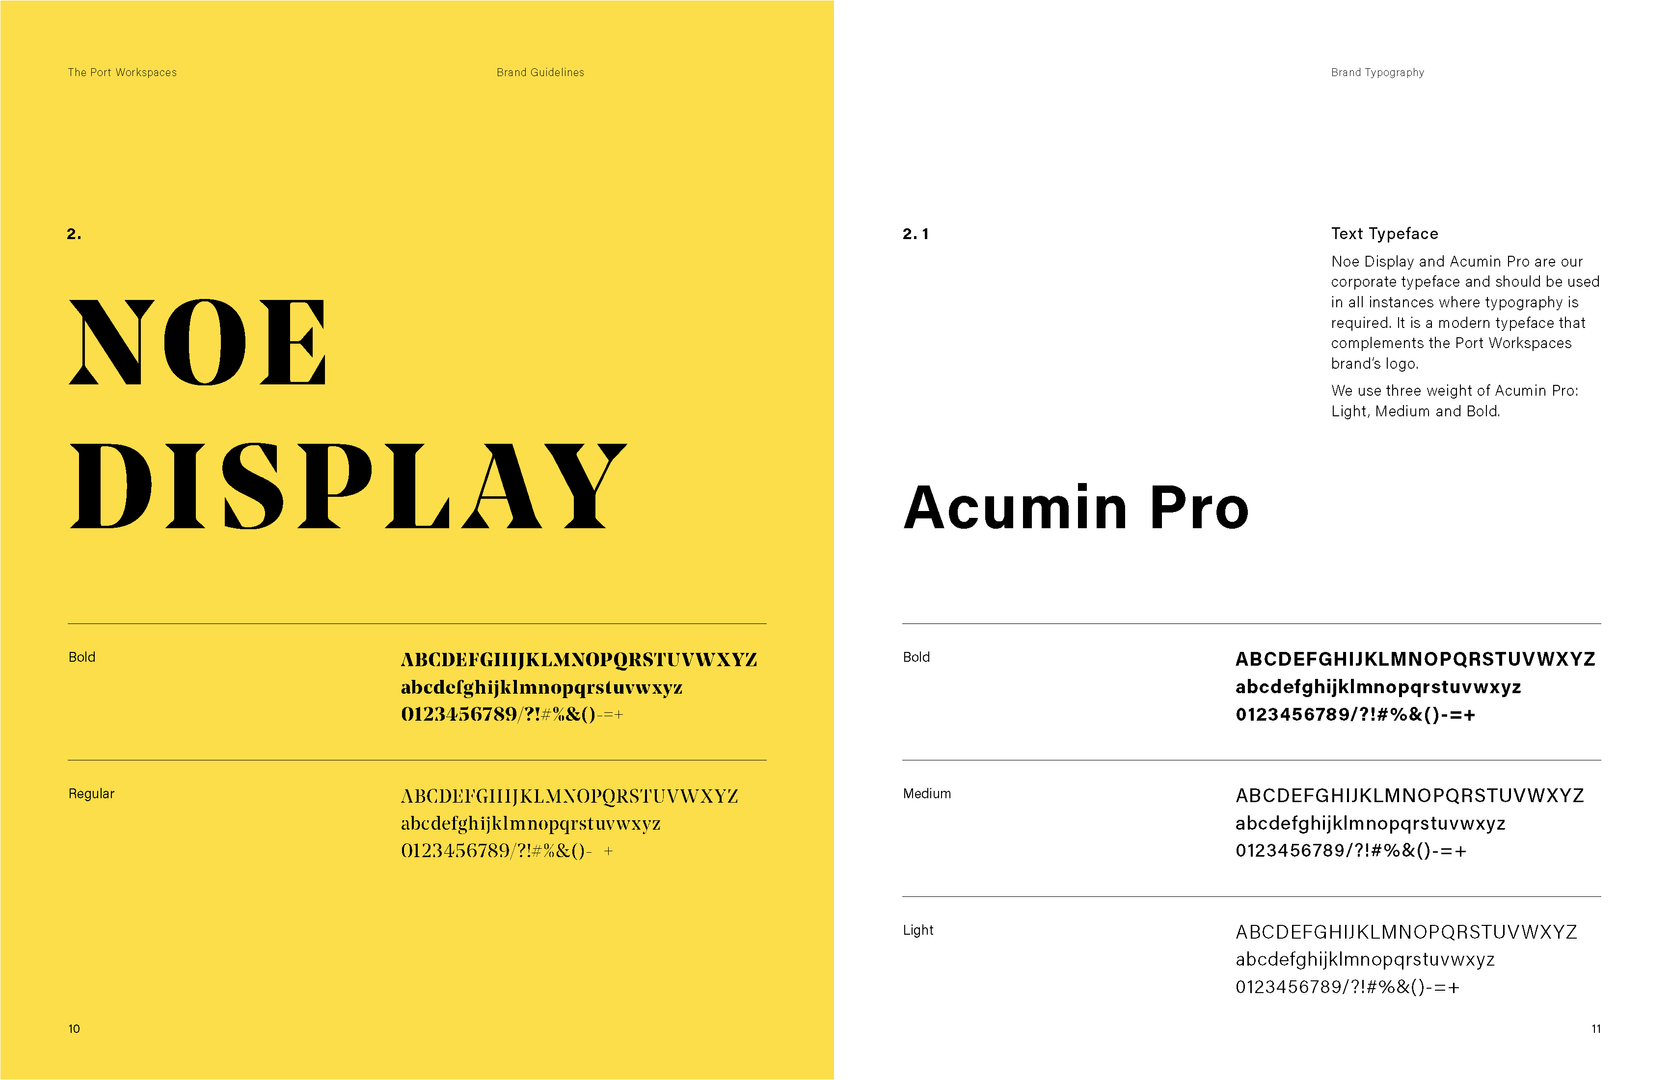 Brand Guidelines_Page_6.png